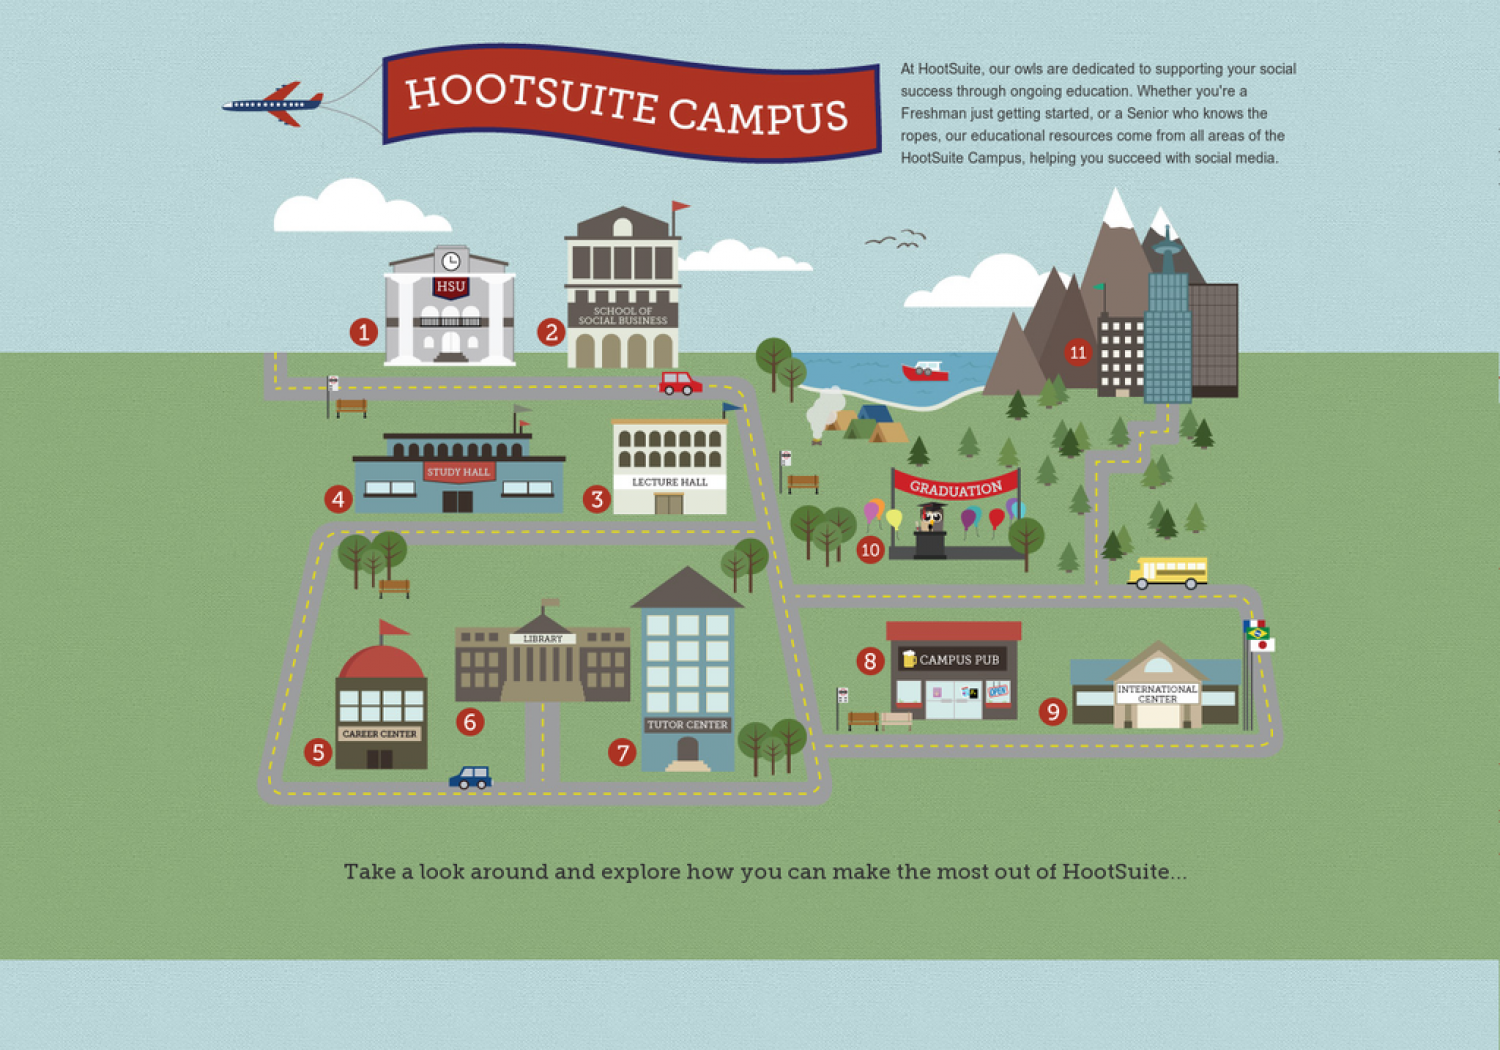 HootSuite Interactive Campus Infographic